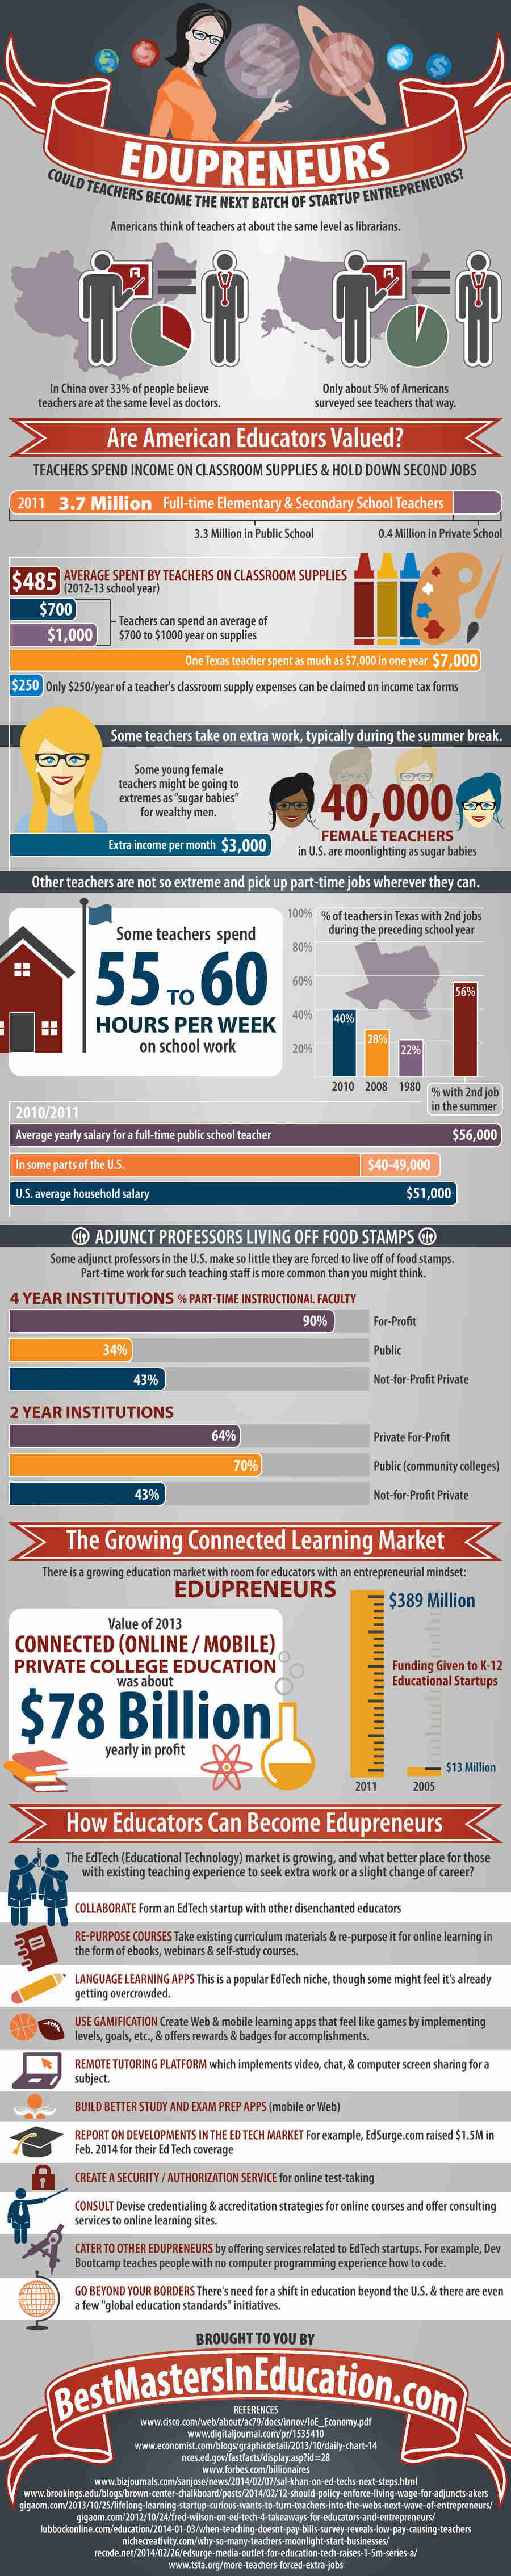 [Infographic] Are Teachers the Next Batch of Education Startup Entrepreneurs?